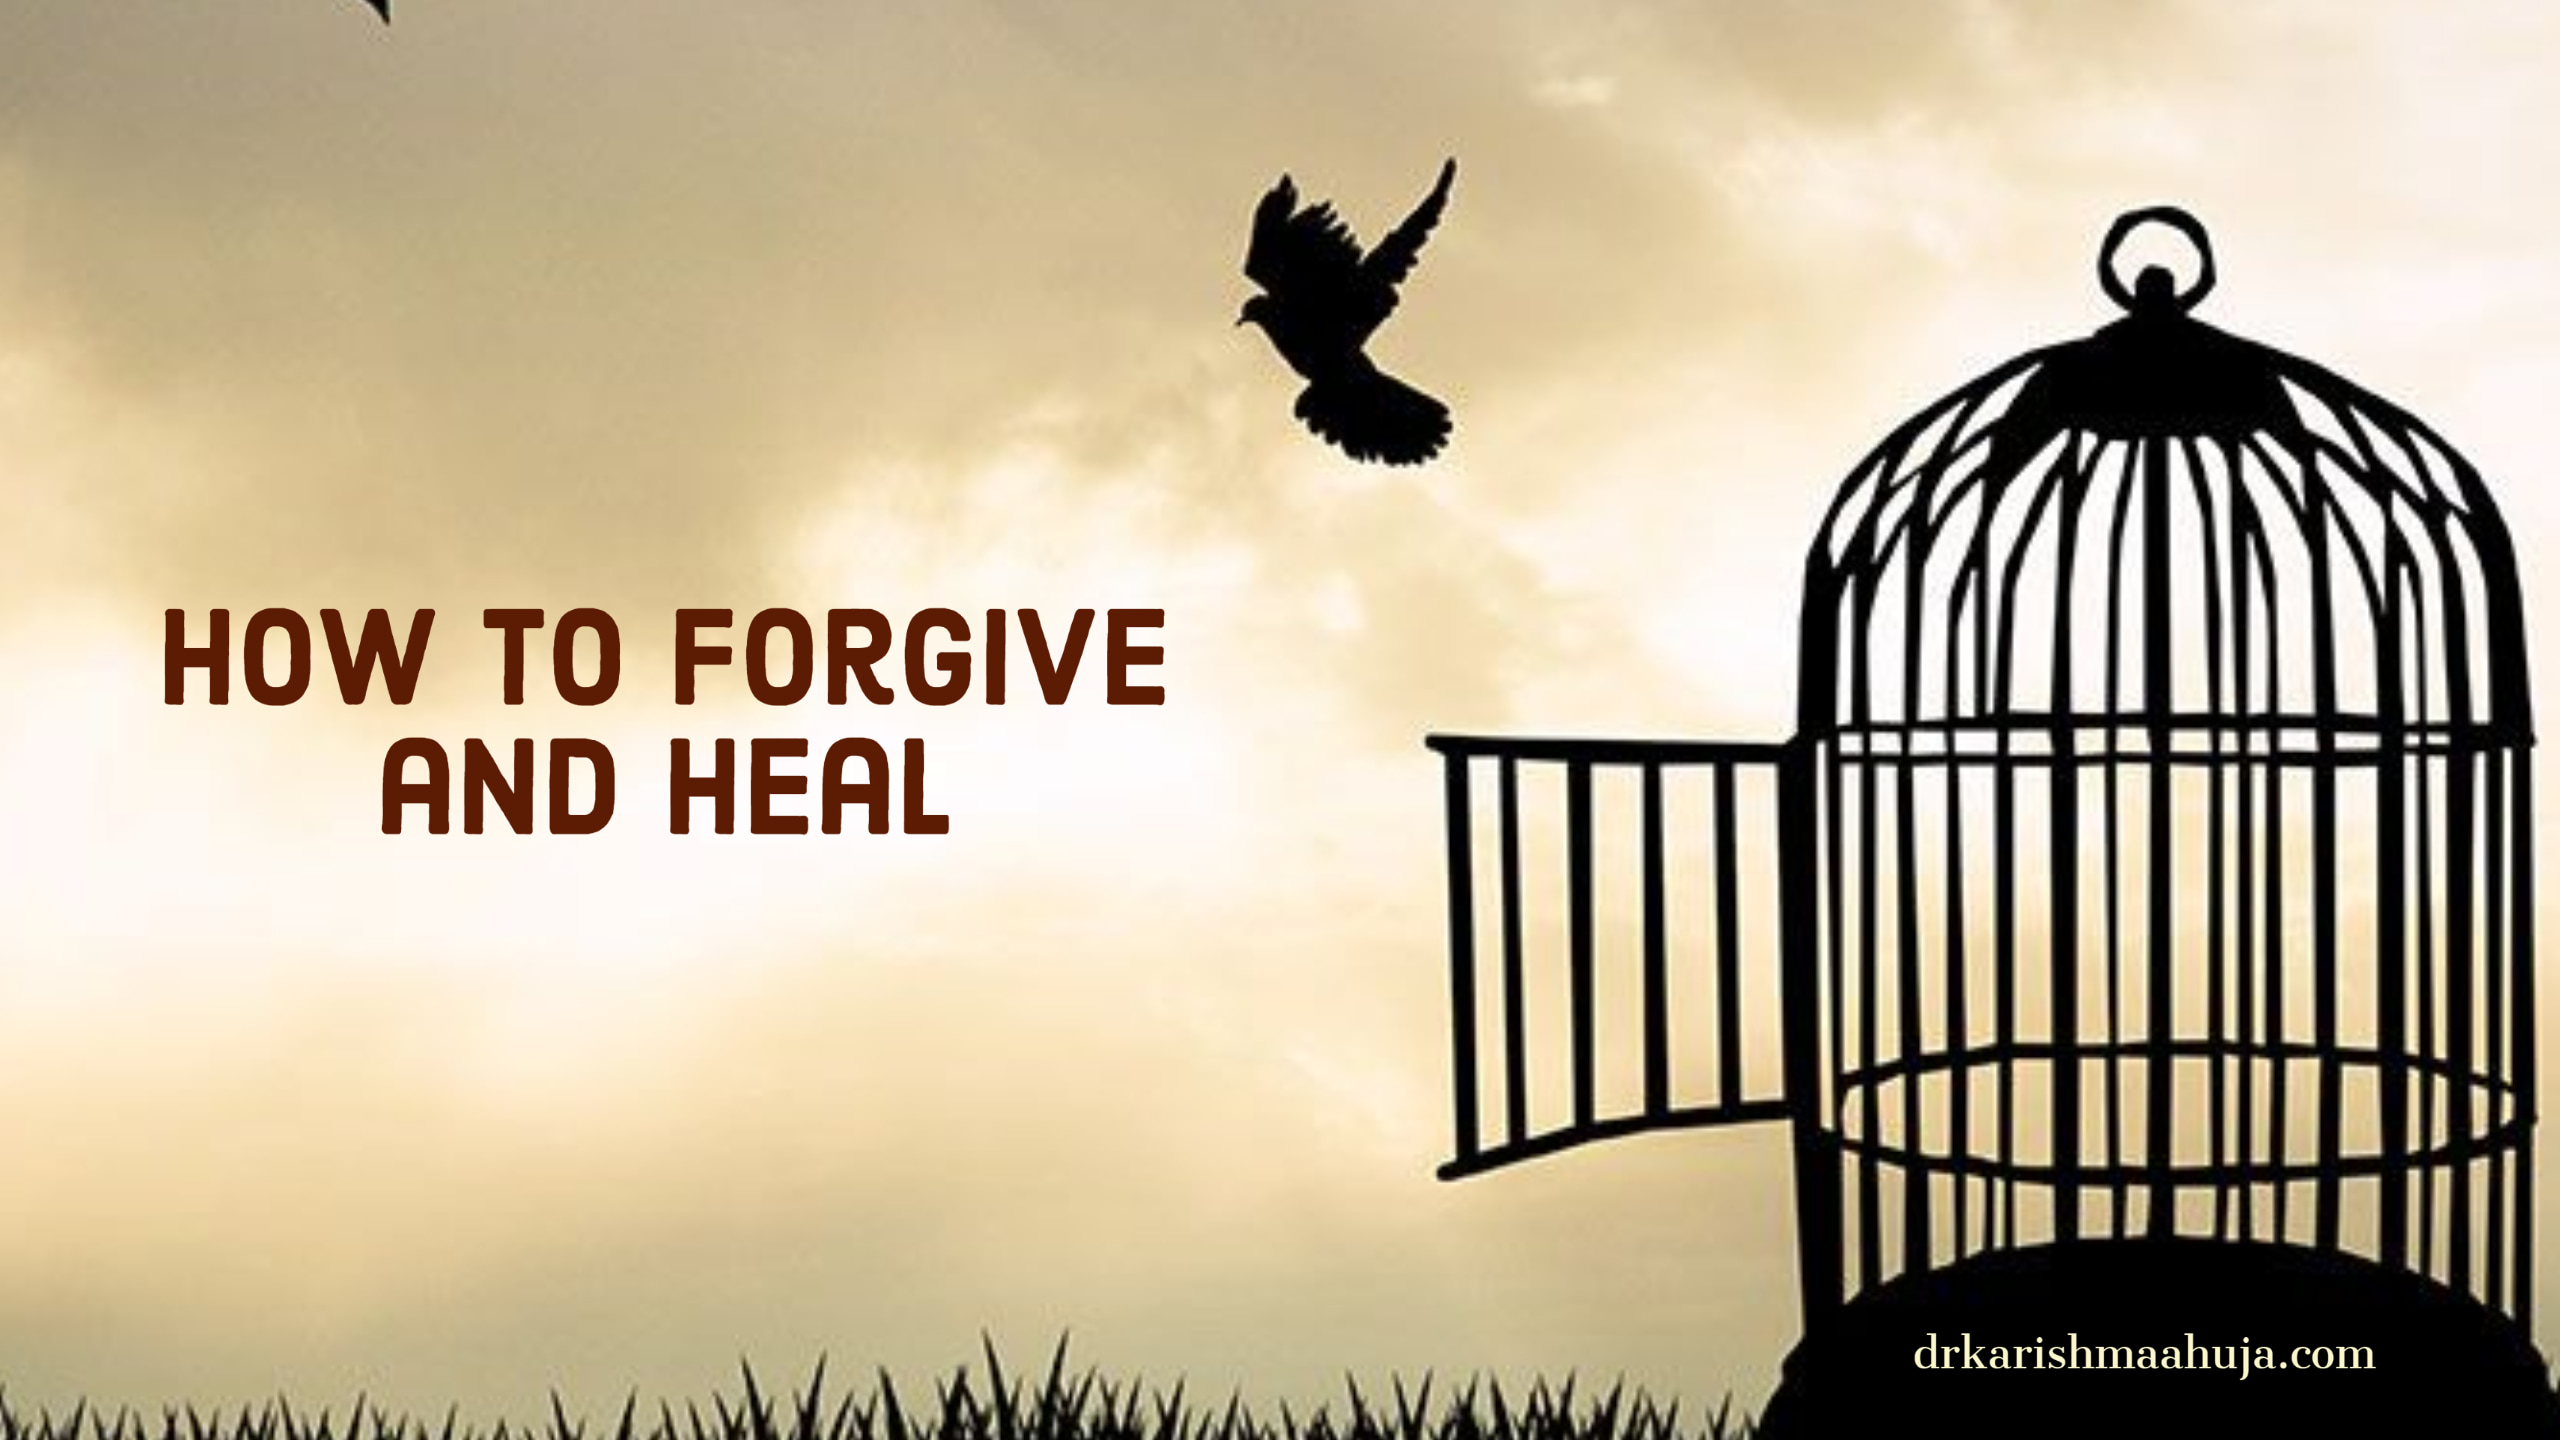 How to Forgive someone who has hurt you